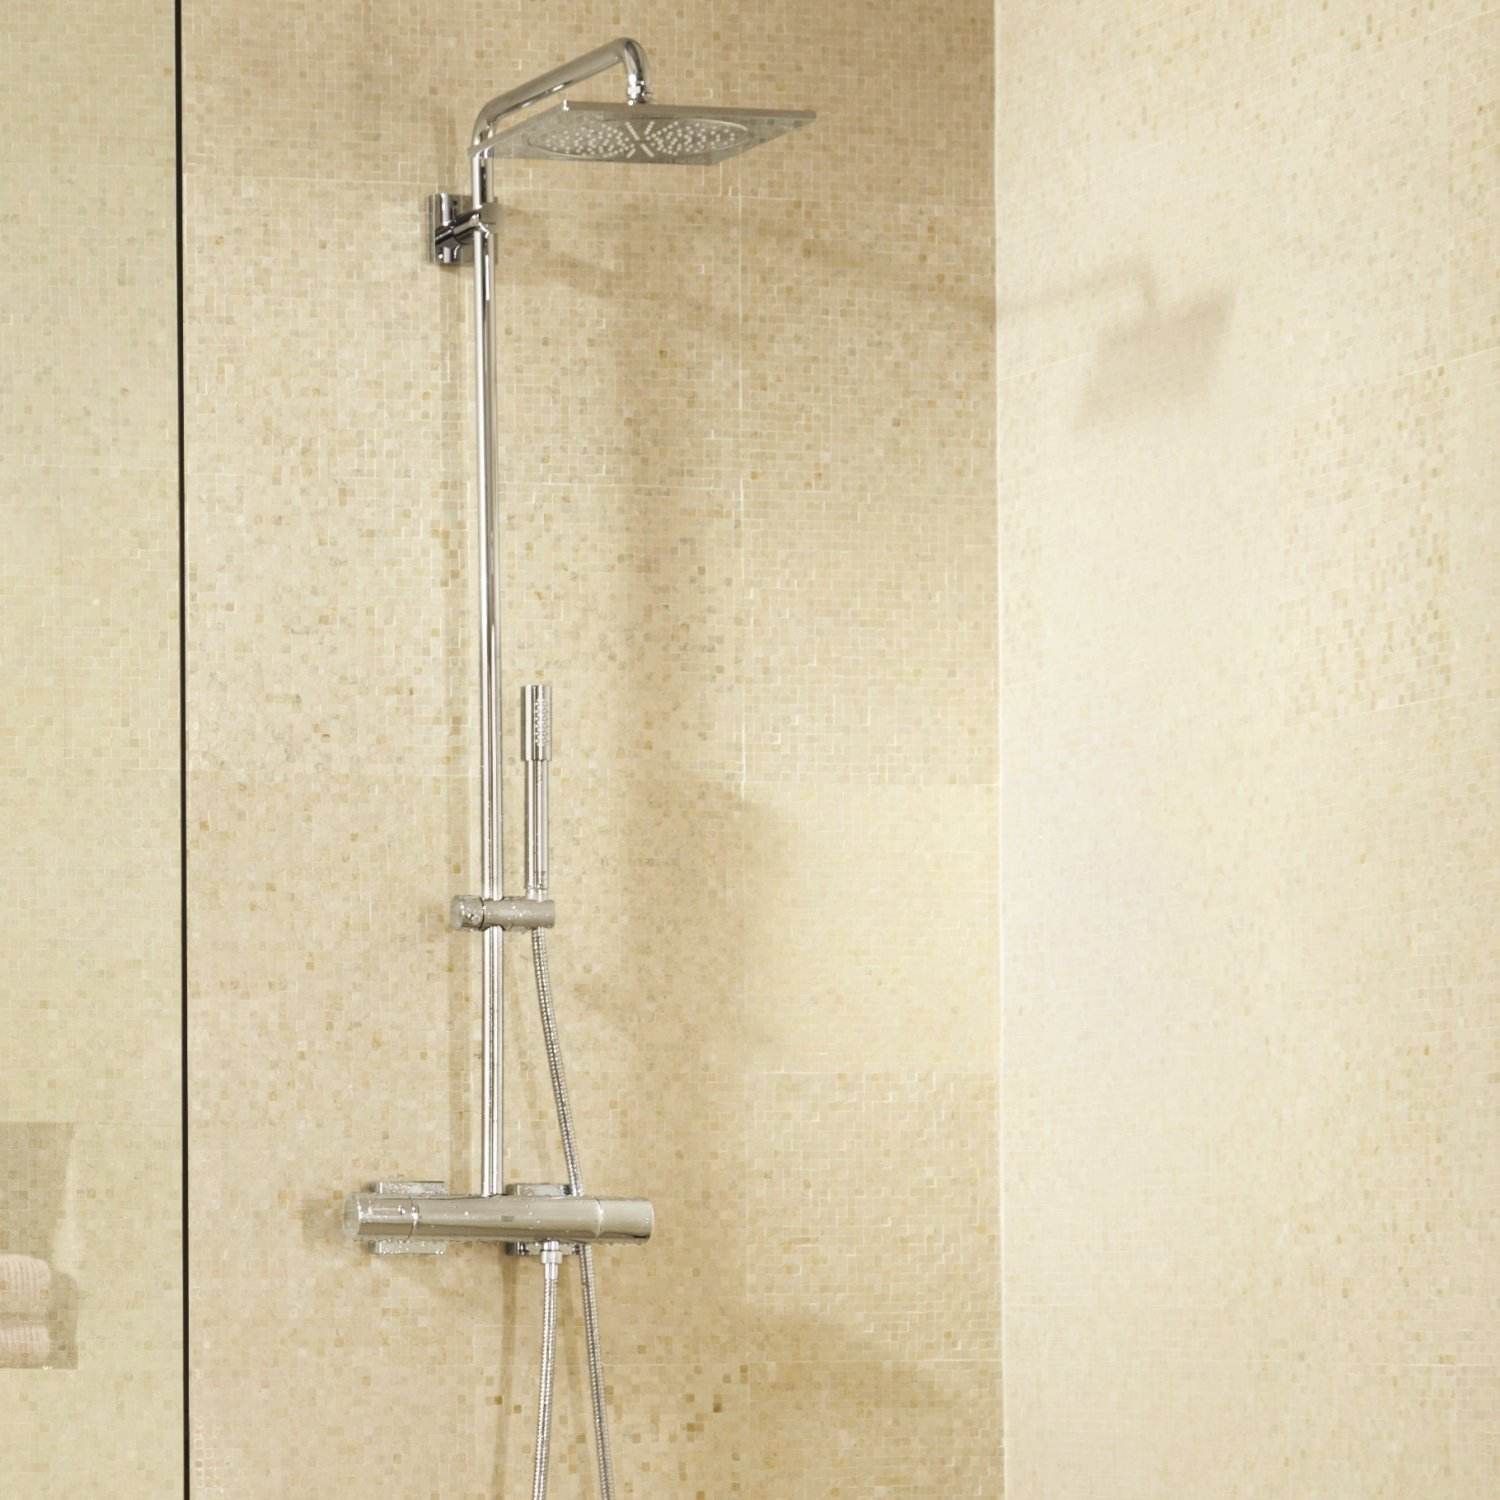 colonne de douche grohe rainshower f series et thermostat notre avis. Black Bedroom Furniture Sets. Home Design Ideas